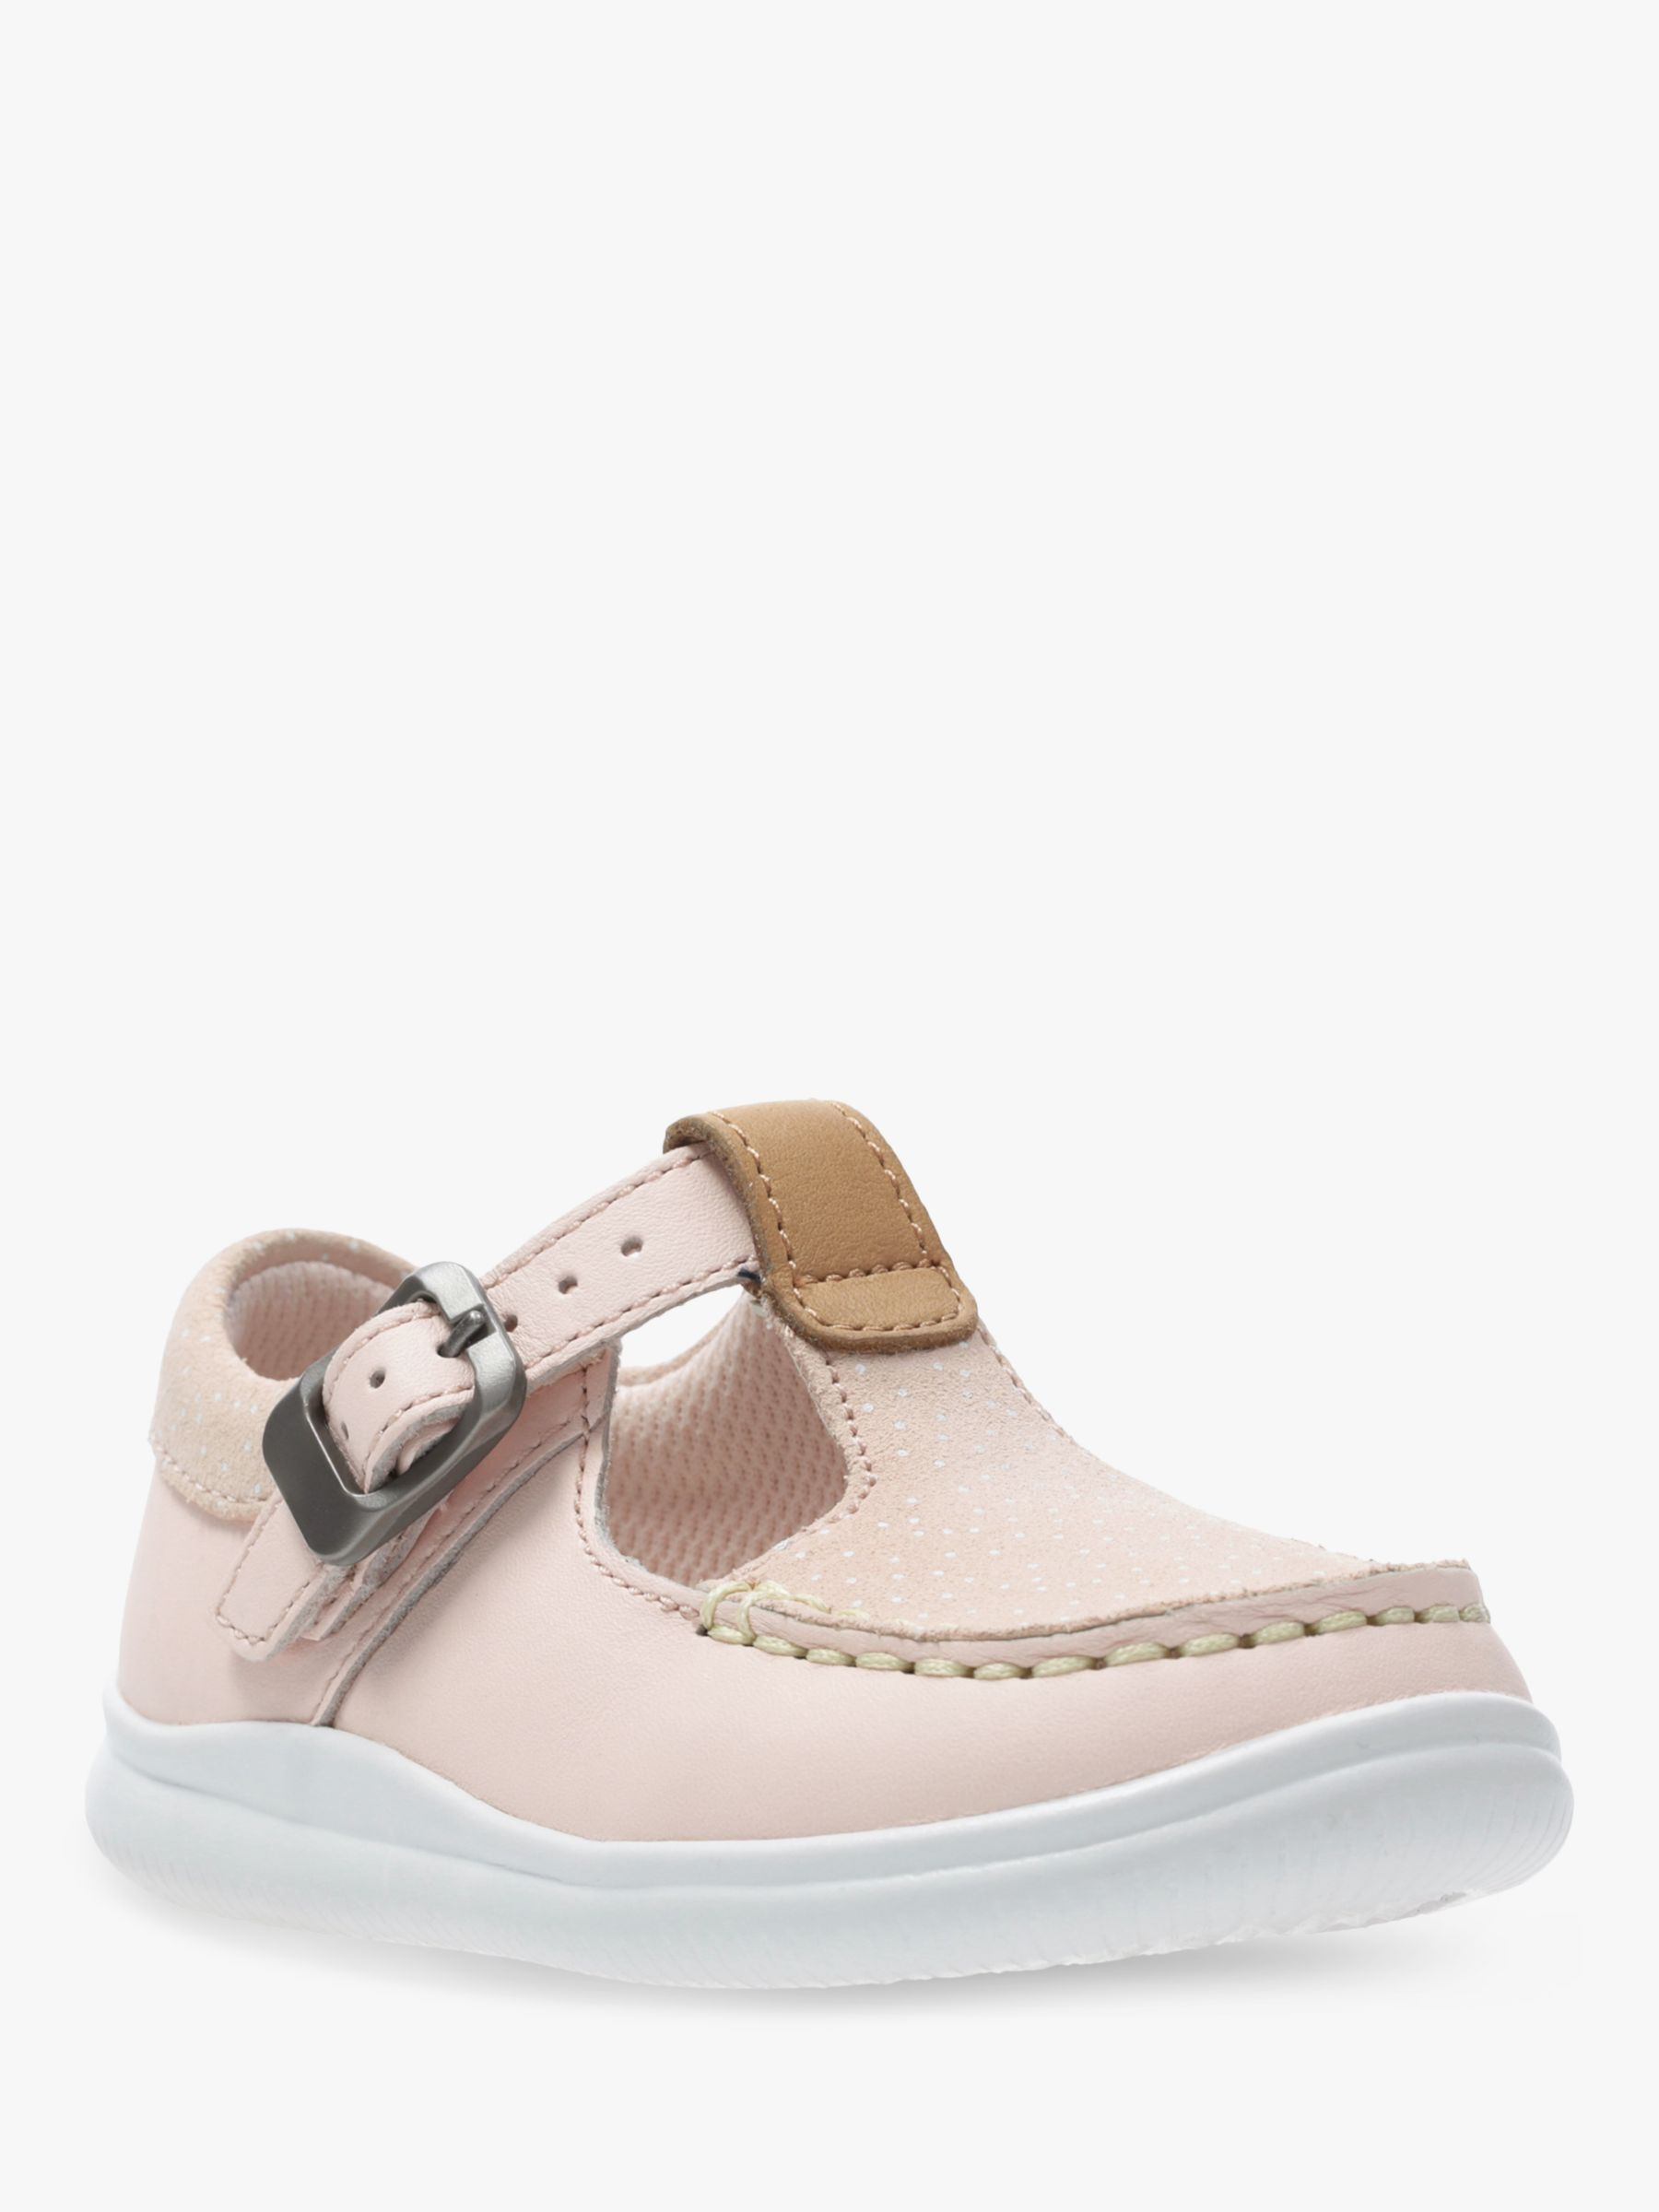 T bar shoes, Childrens shoes, Girls shoes